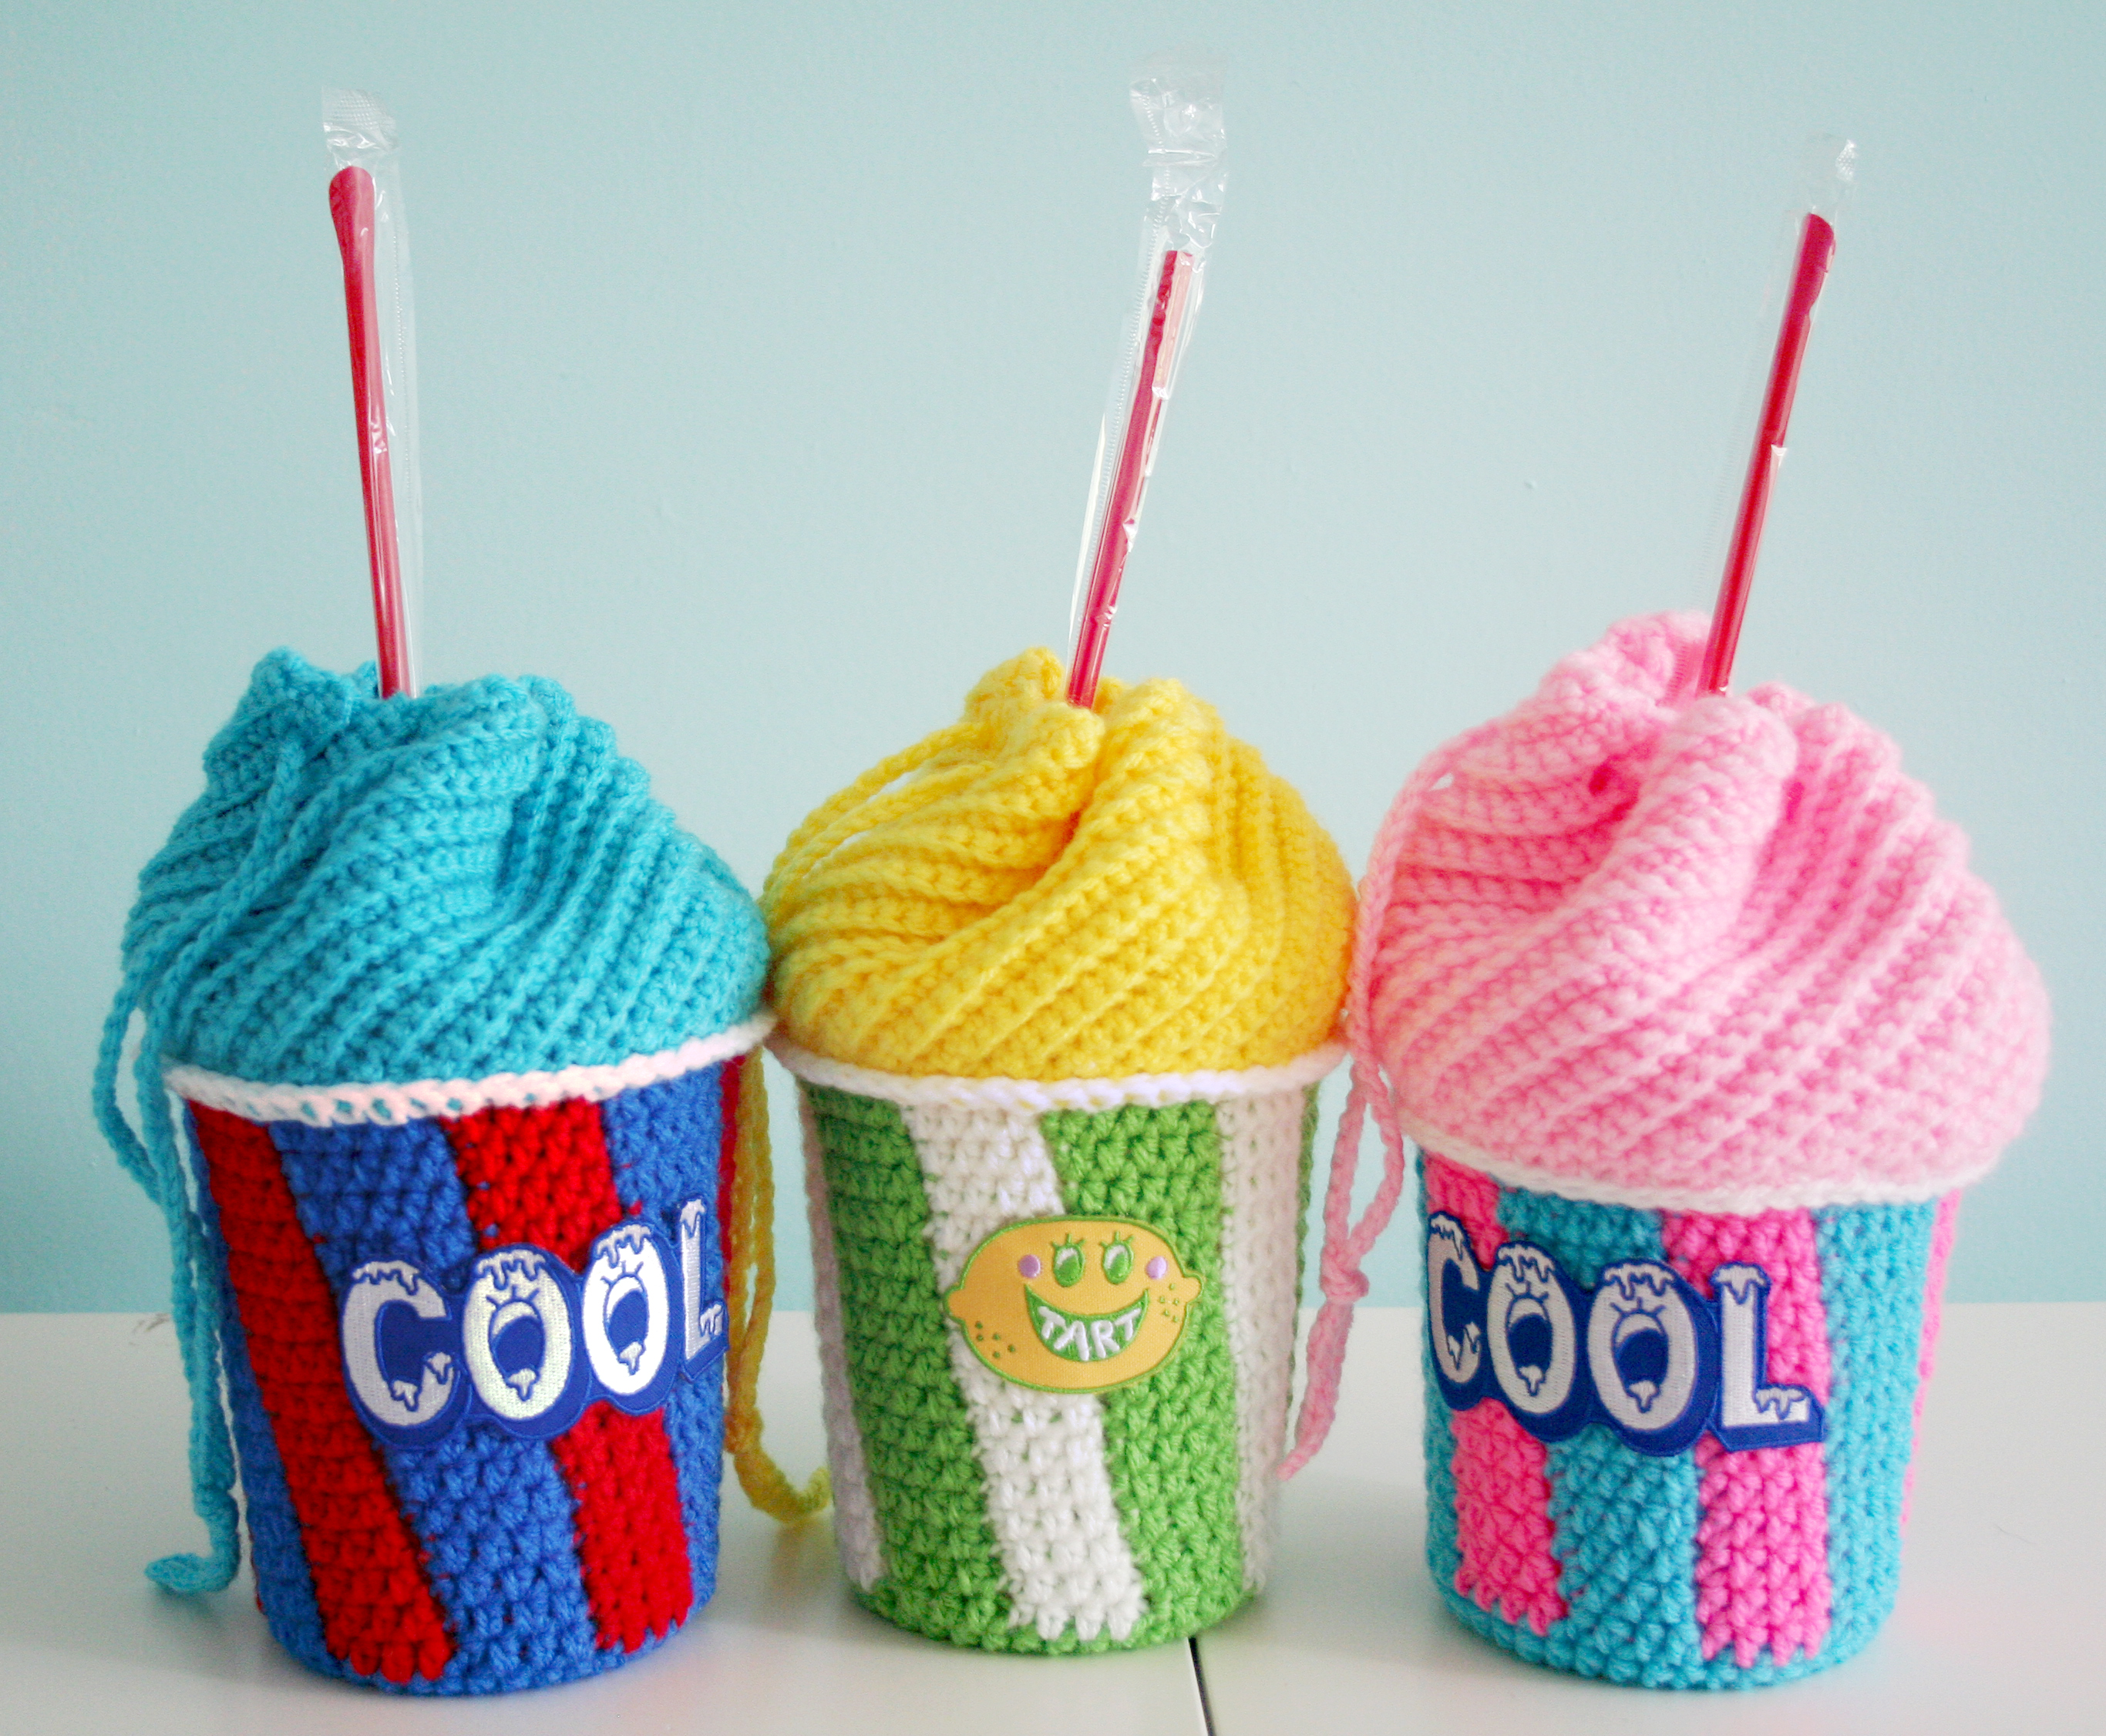 Crochet Backpack Pattern : Free Crochet Pattern: Slushee Cup Drawstring Bag Twinkie Chan Blog